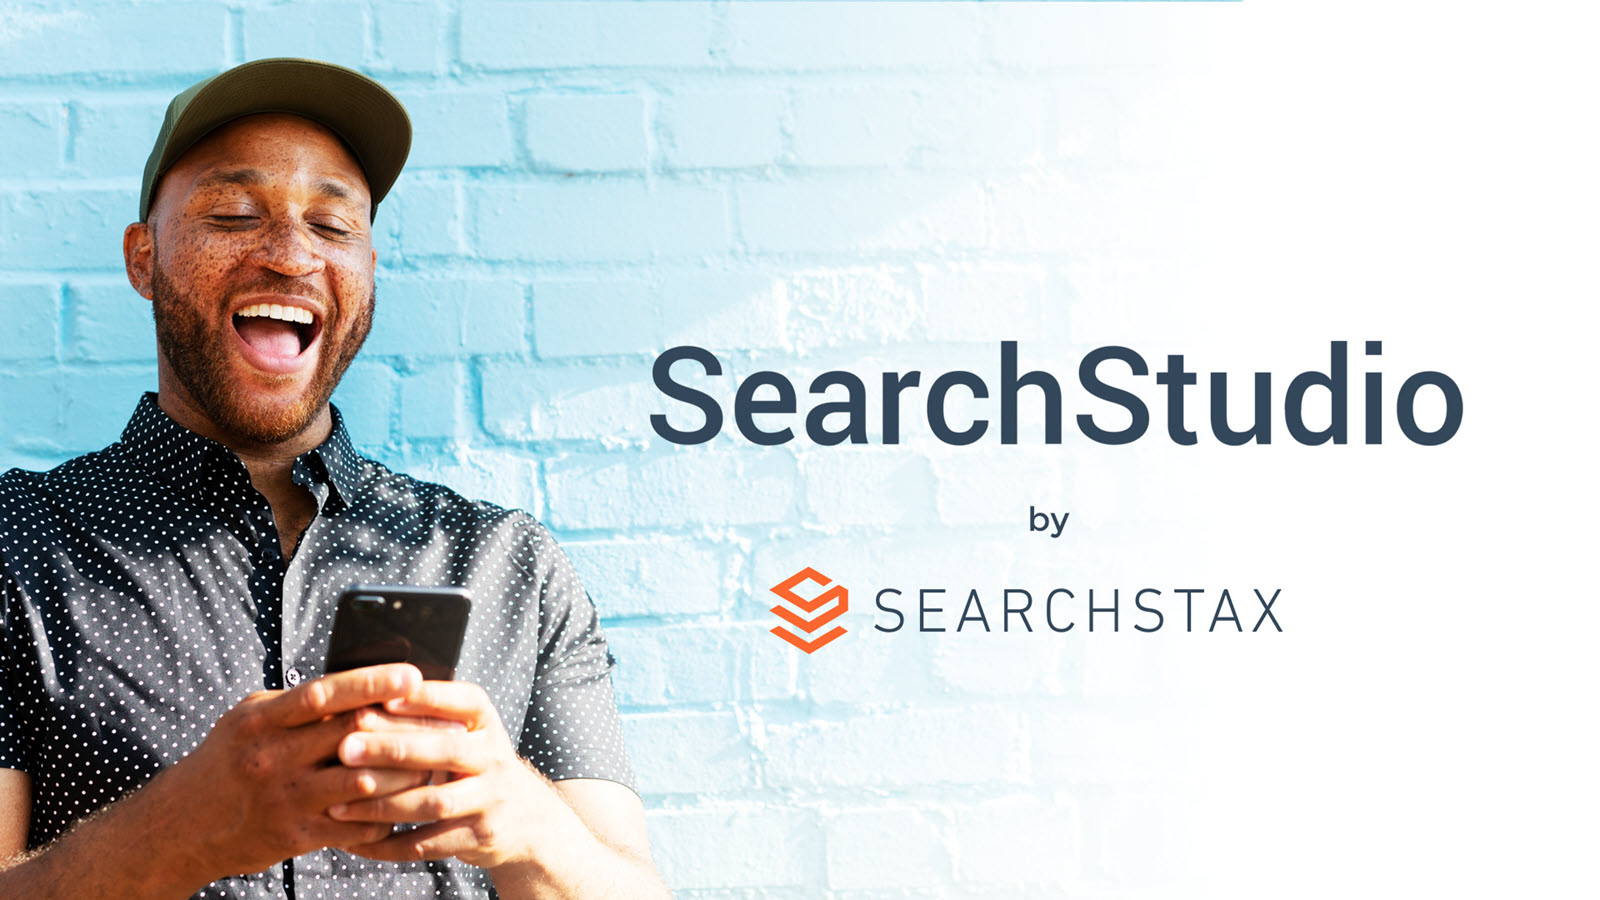 SearchStudio - Powerful Search is Now Easier for Marketers and Developers